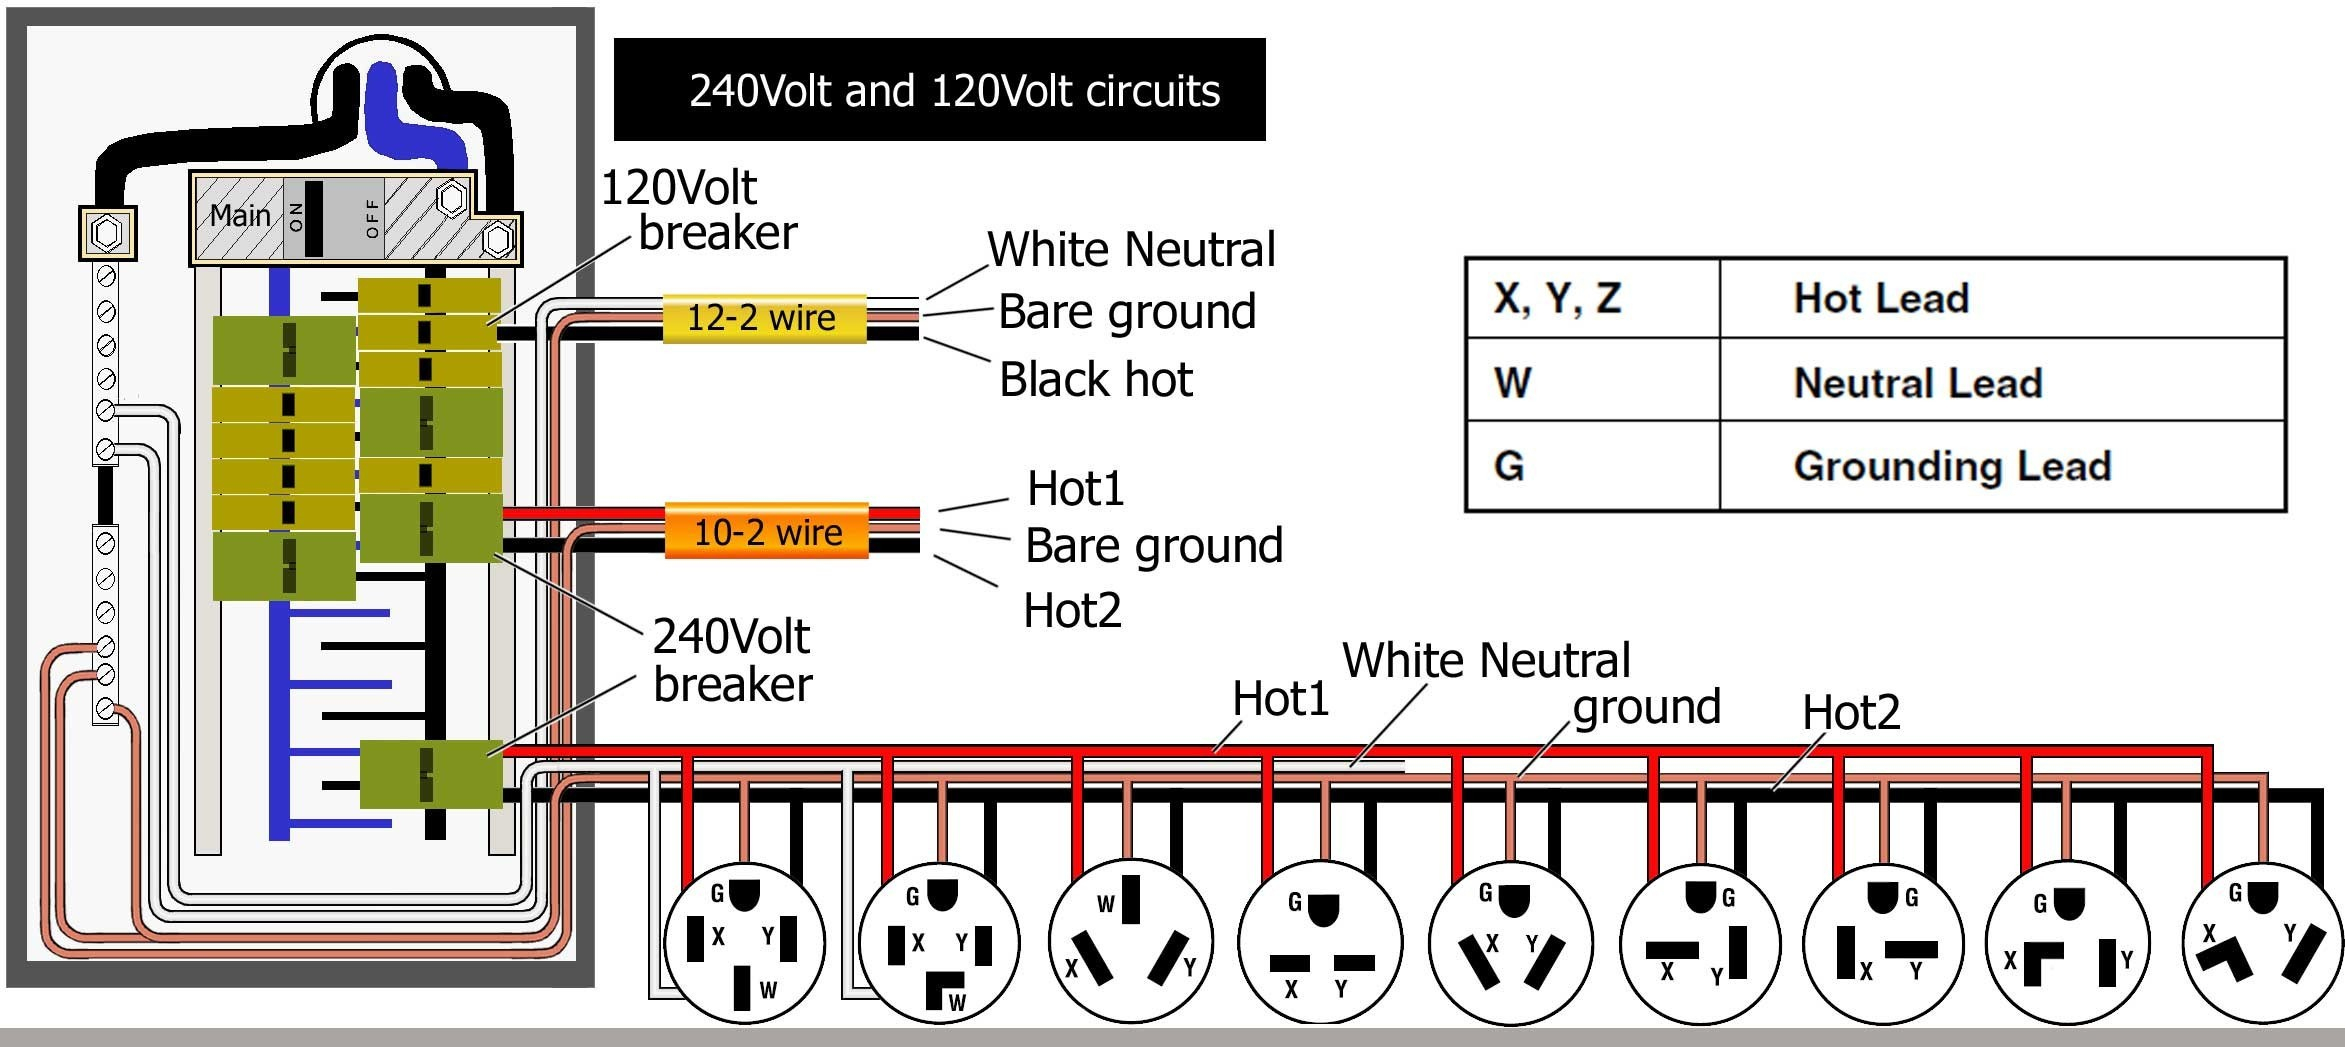 Dryer Wire Diagram | Wiring Library - 240 Volt Plug Wiring Diagram